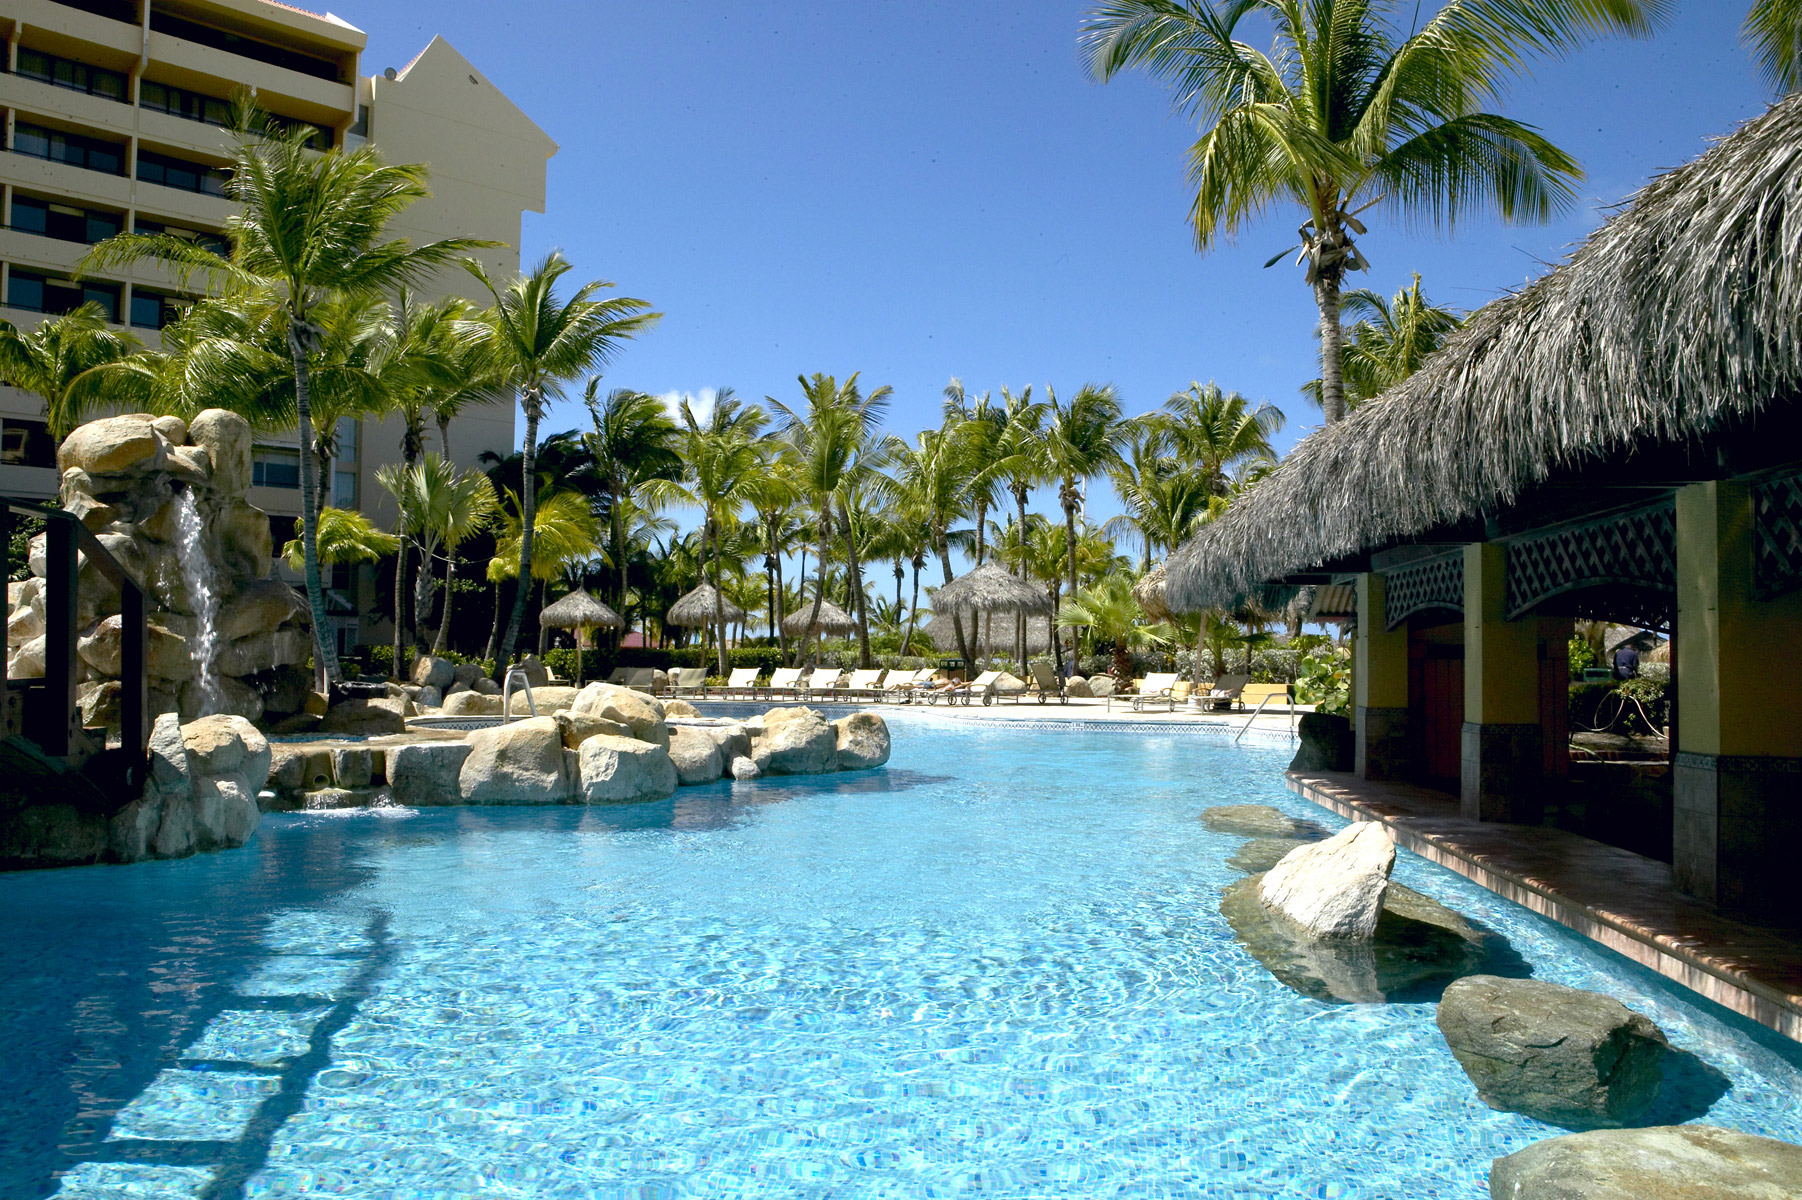 Occidental grand aruba resorts daily for Daily hotel